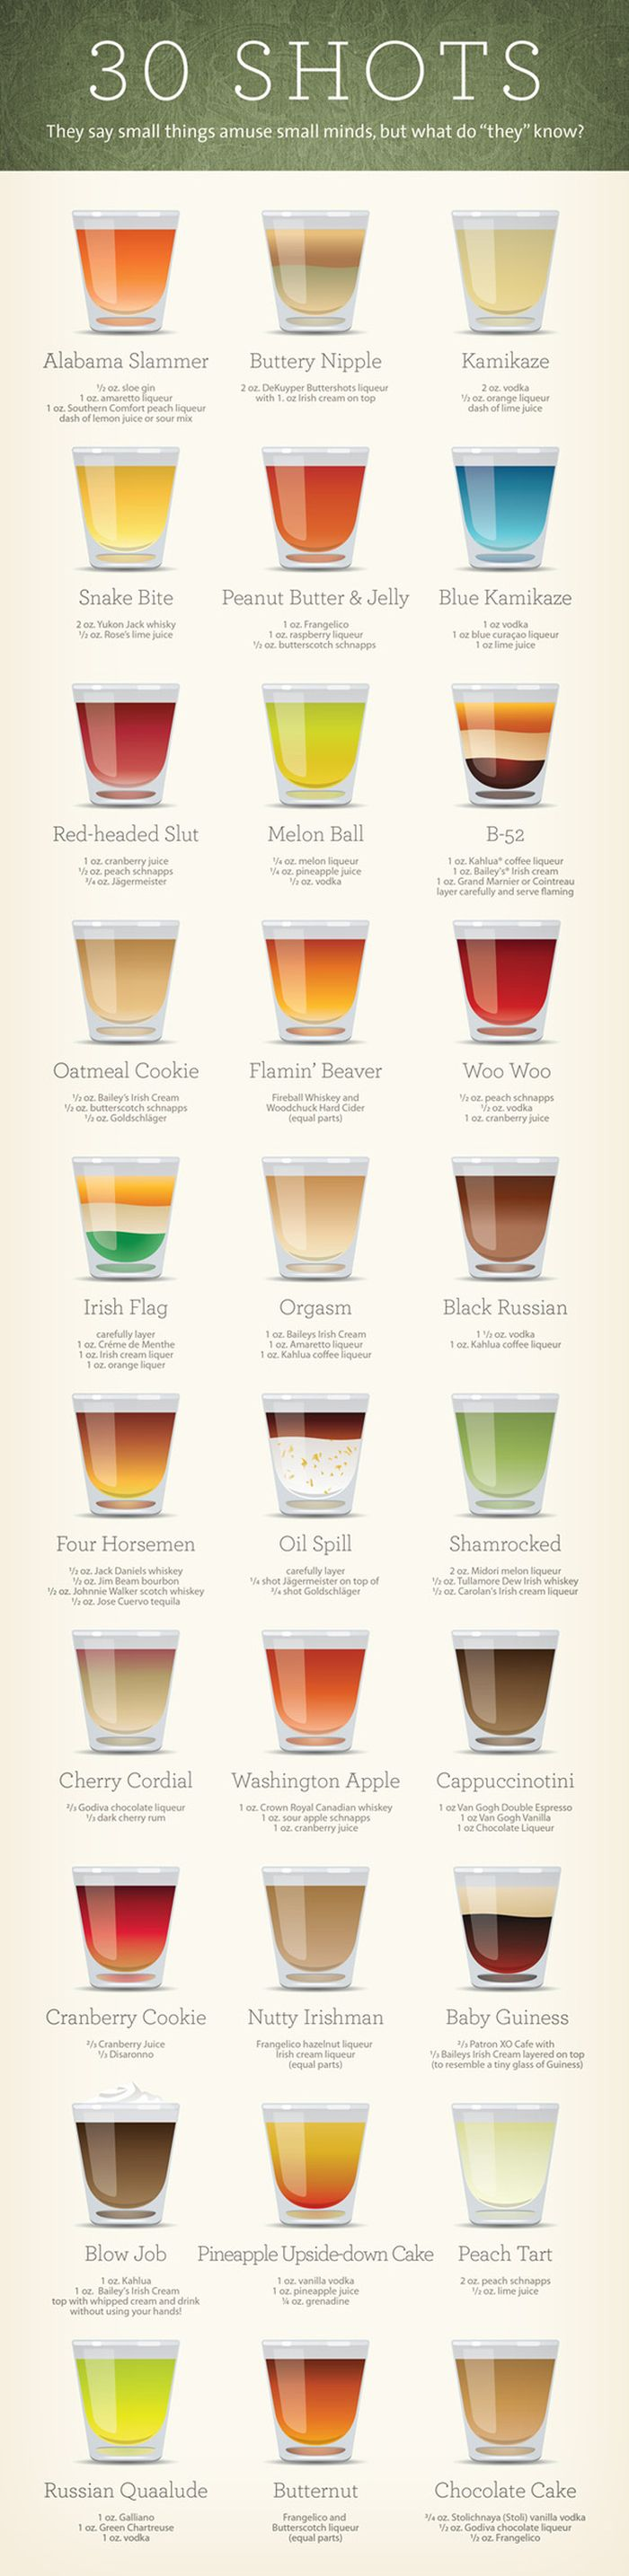 30 Shots Infographic (infographic)